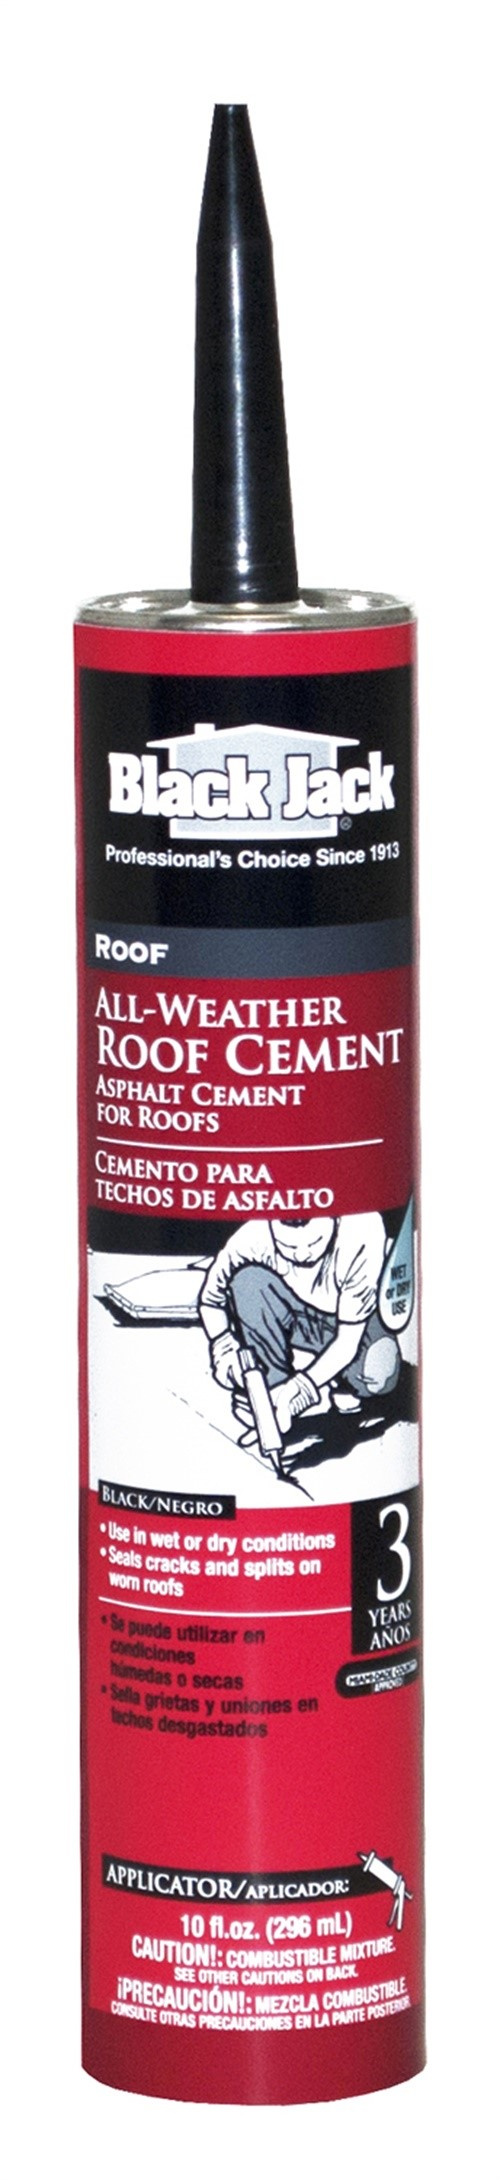 Black Jack All Weather Roof Cement ...